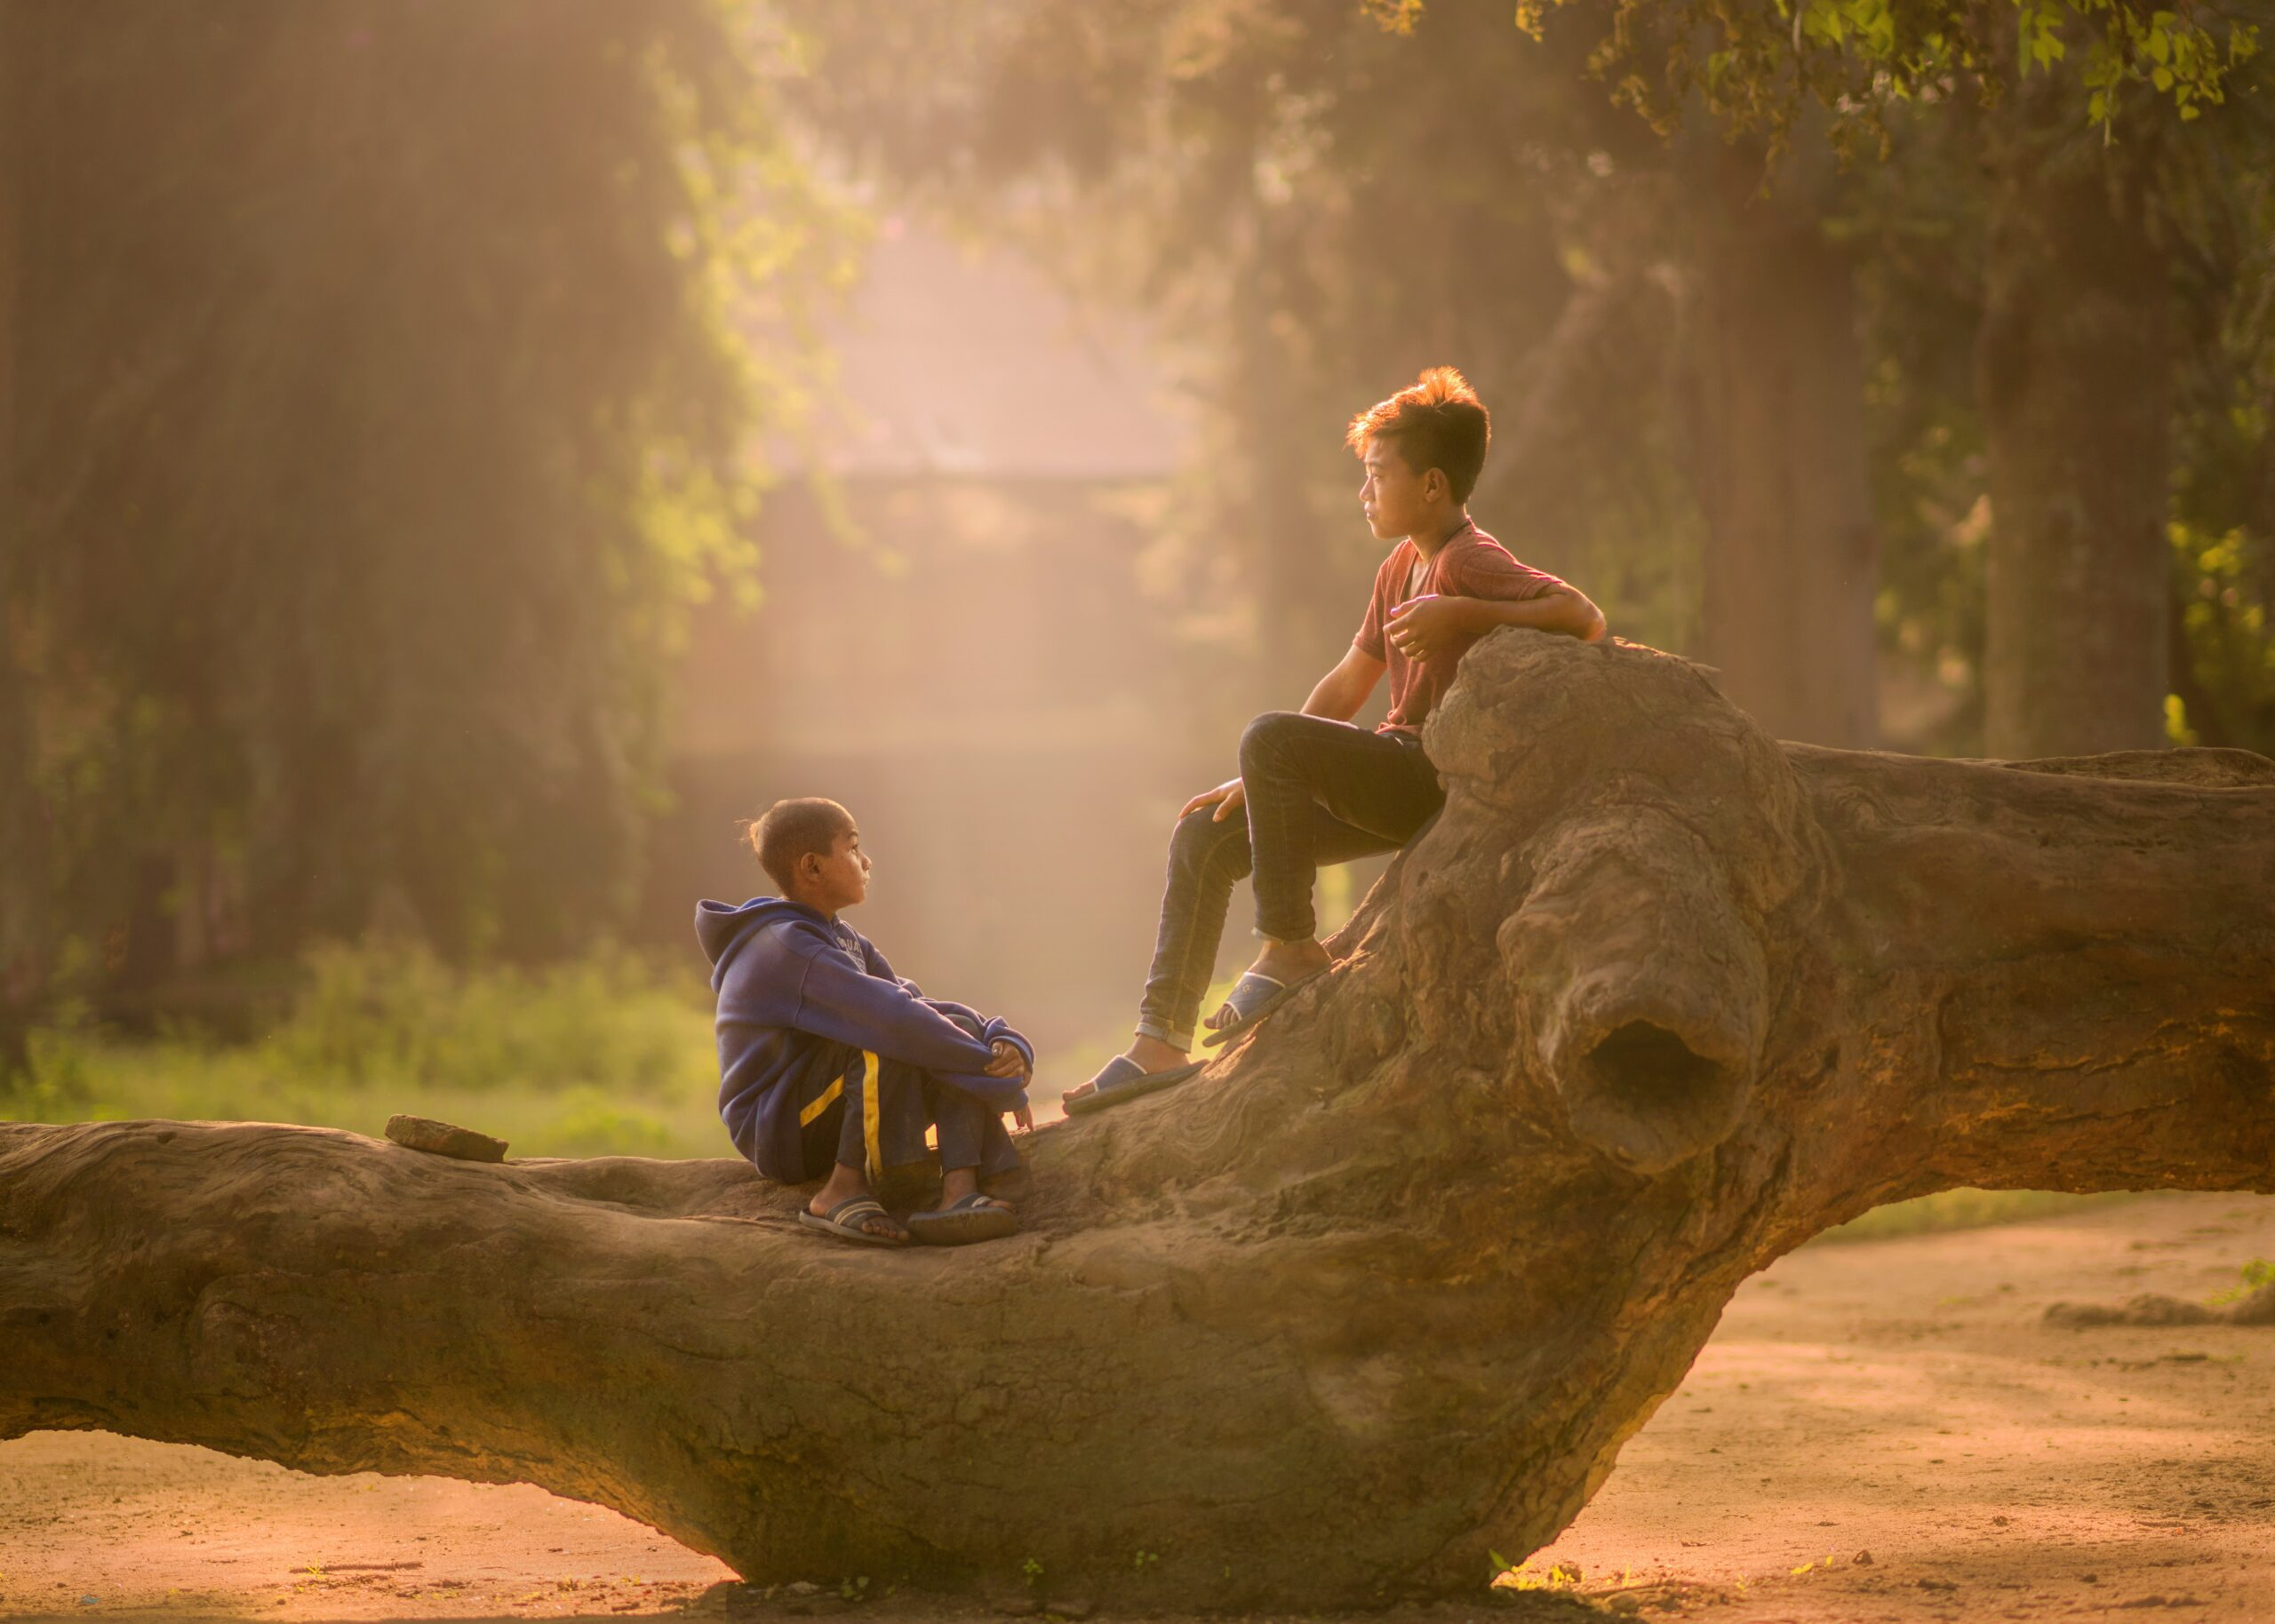 robert-collins-Two boys on deadwood talking sunsplashed in evening light-unsplash